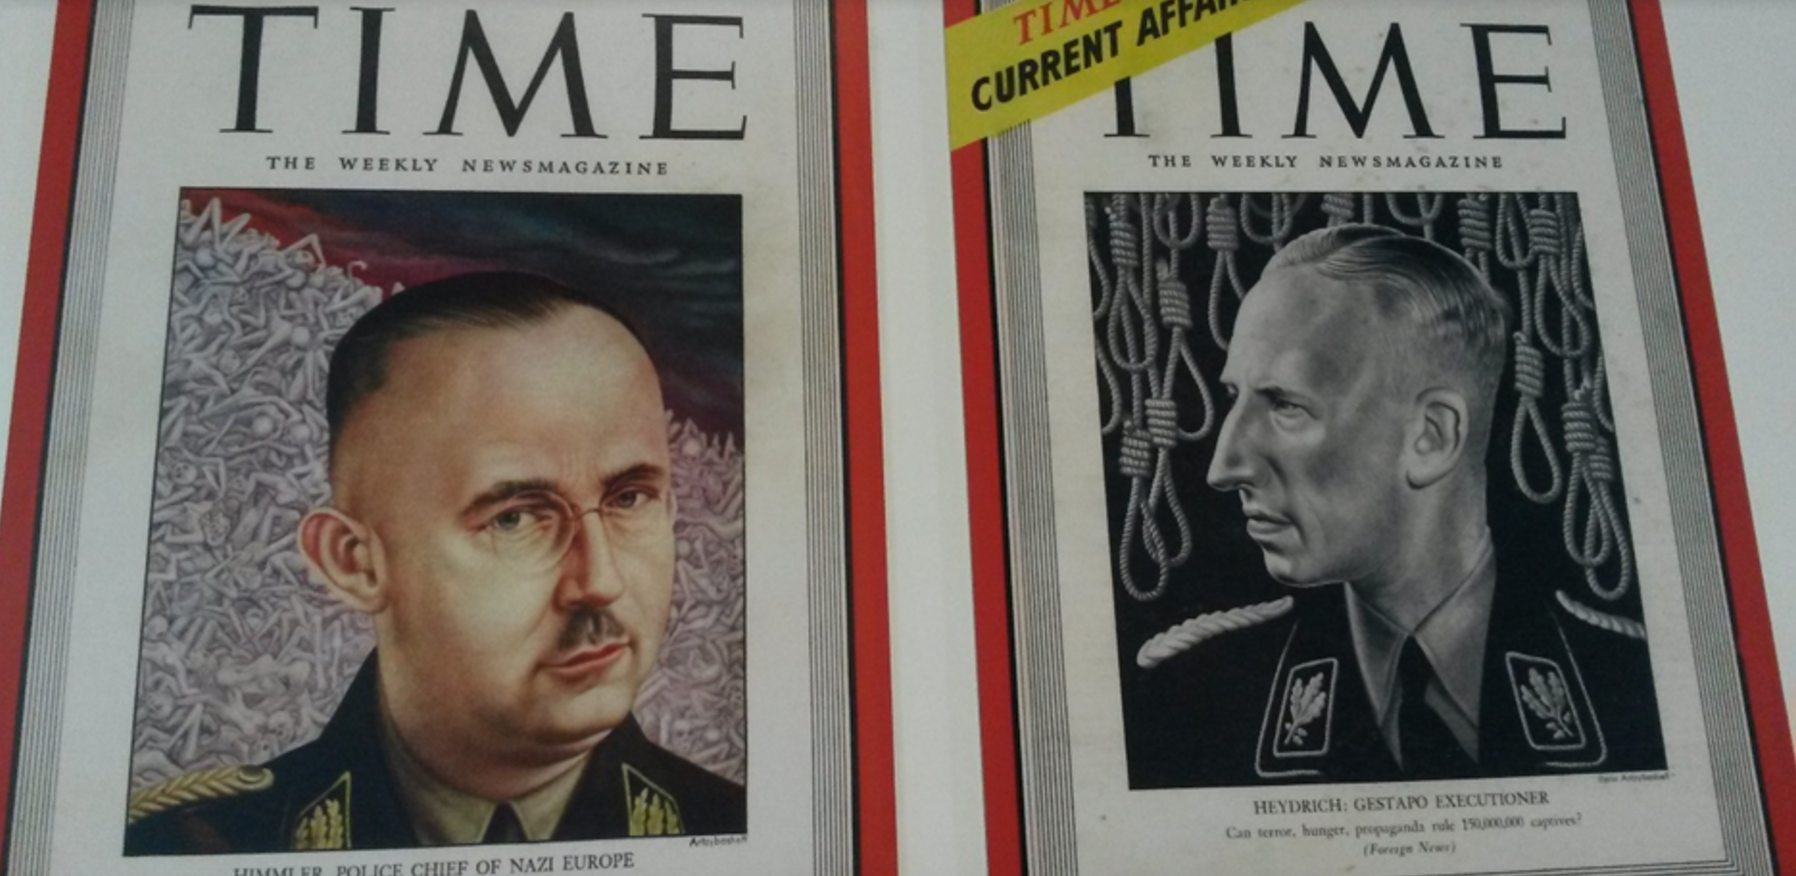 TIME covers that tell it like it was!